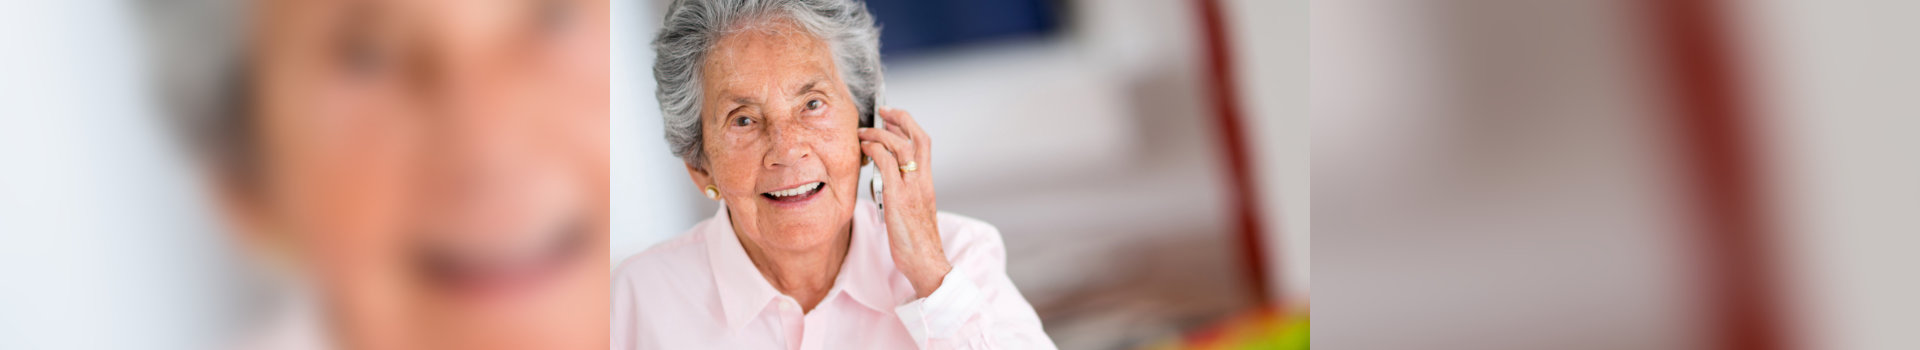 old woman calling someon using her mobile phone